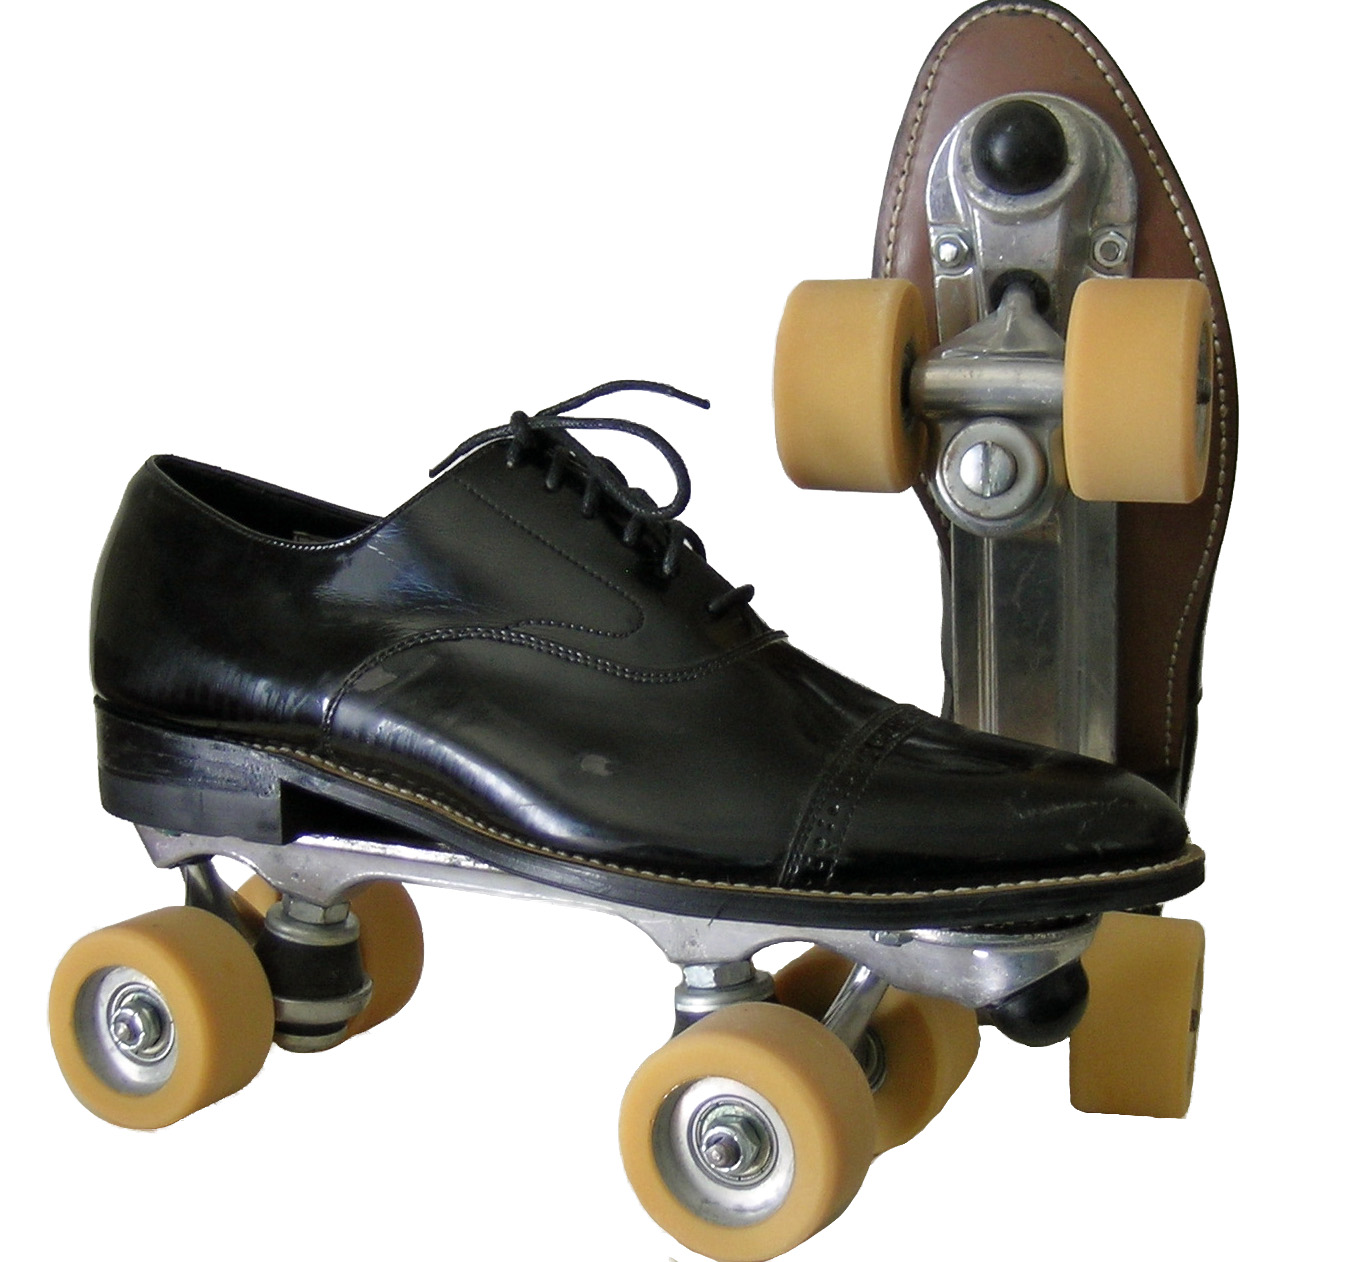 converse roller skates. black patent stacy baldwin roller skates with labeda wheels - men\u0027s size 9.5 2nd life converse s